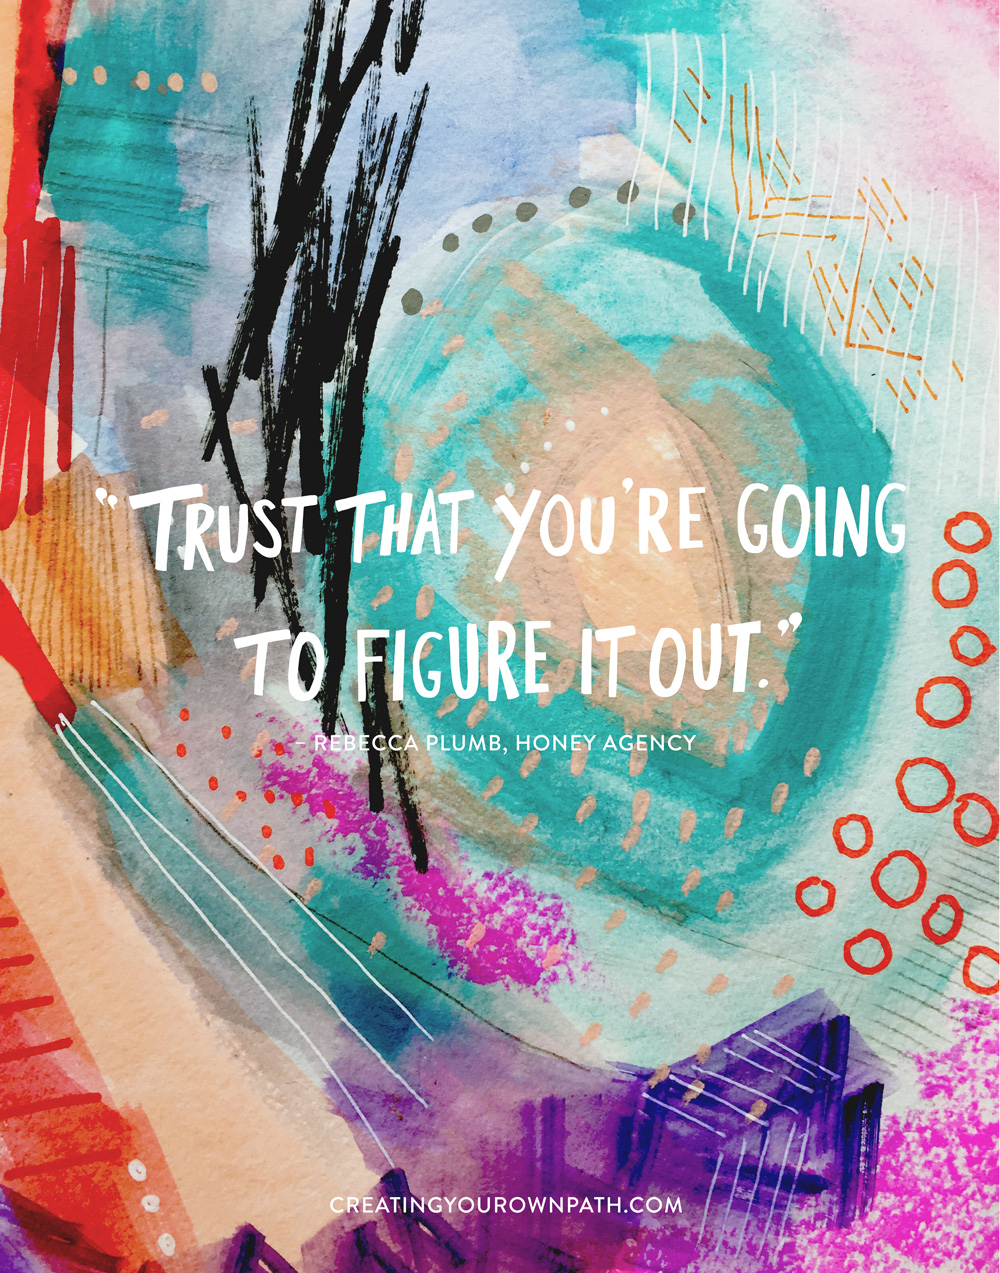 """Trust that you're going to figure it out."" — Rebecca Plumb,  Honey Agency  // Artwork by  Melanie Biehle"